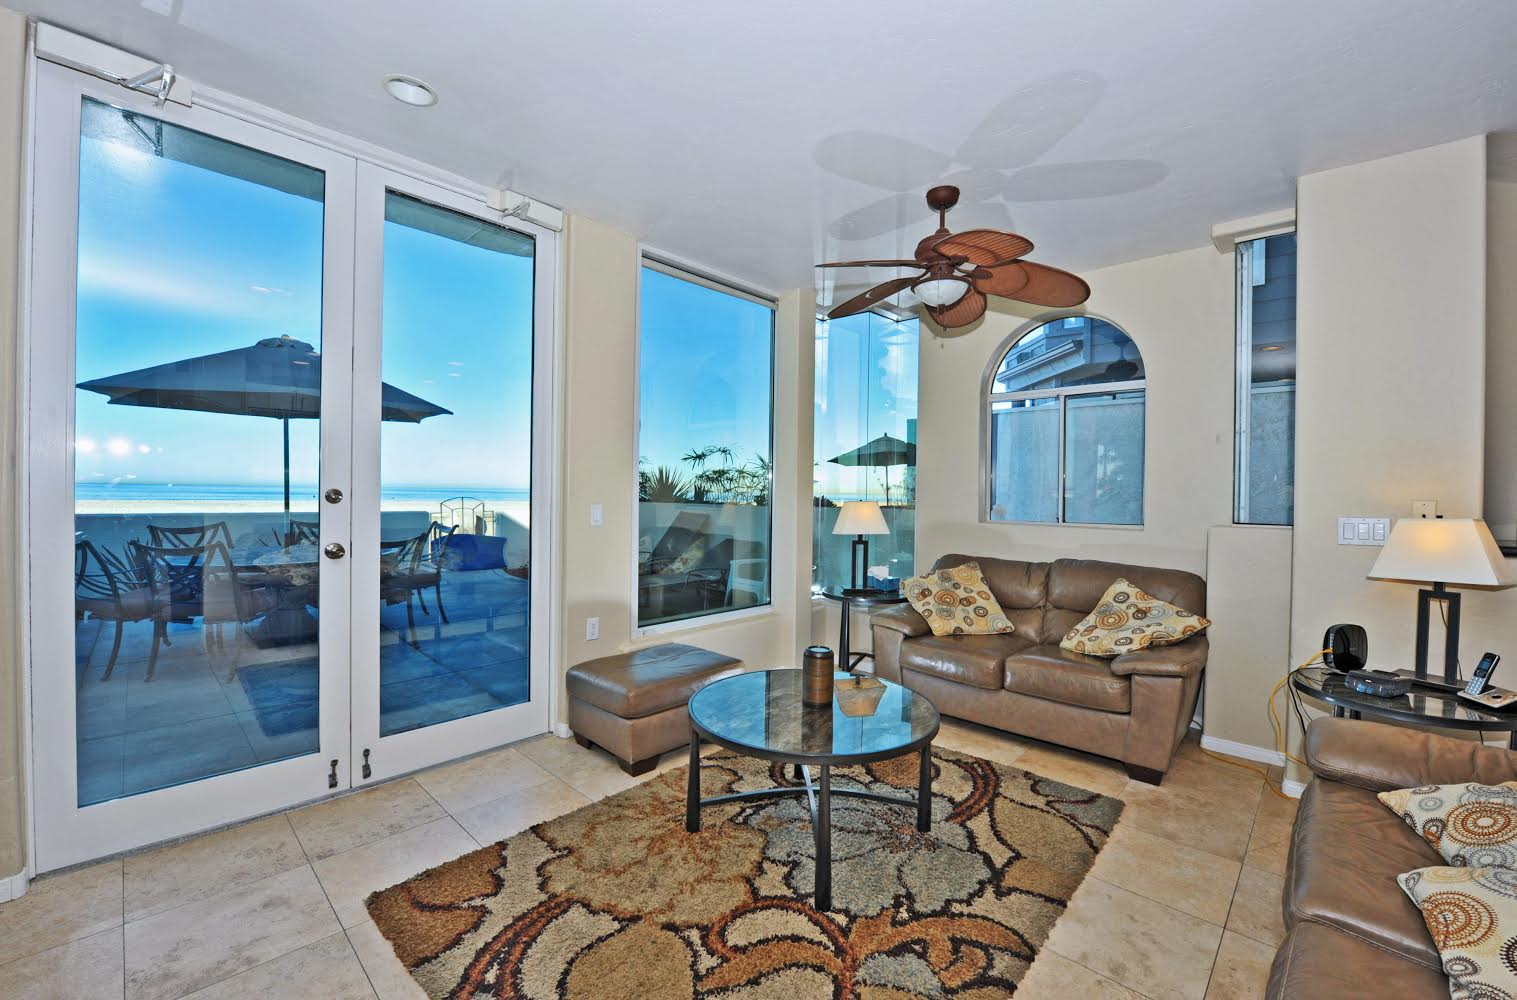 San Diego Vacation Rentals Mission Beach House Vacation Rentals San Diego Vacation Rentals And